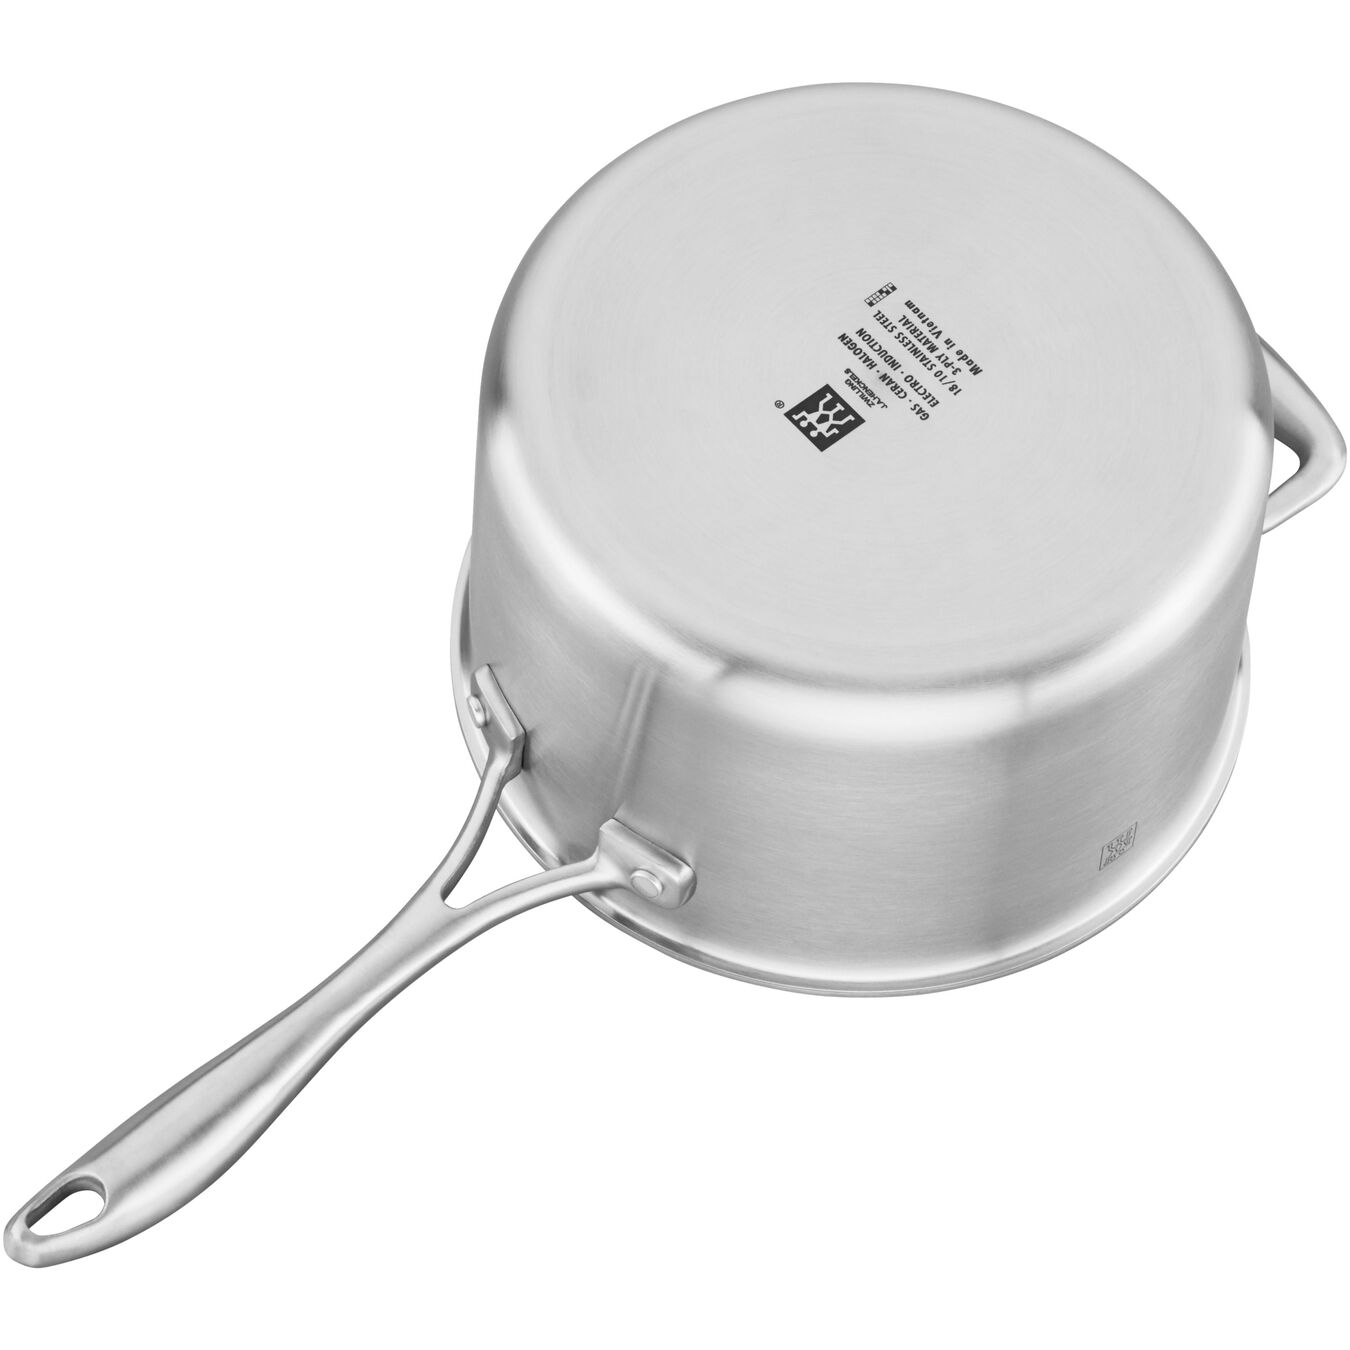 3-ply 4-qt Stainless Steel Ceramic Nonstick Saucepan,,large 1